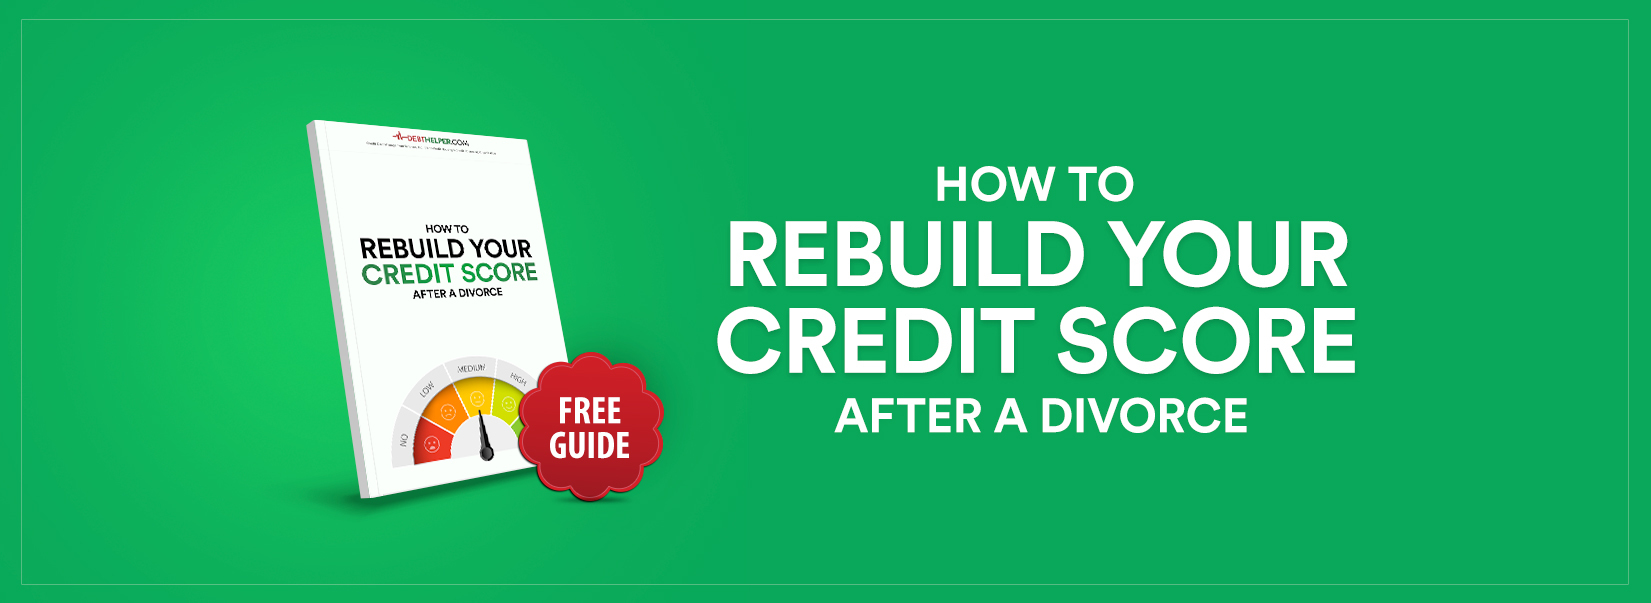 how to rebuild credit score